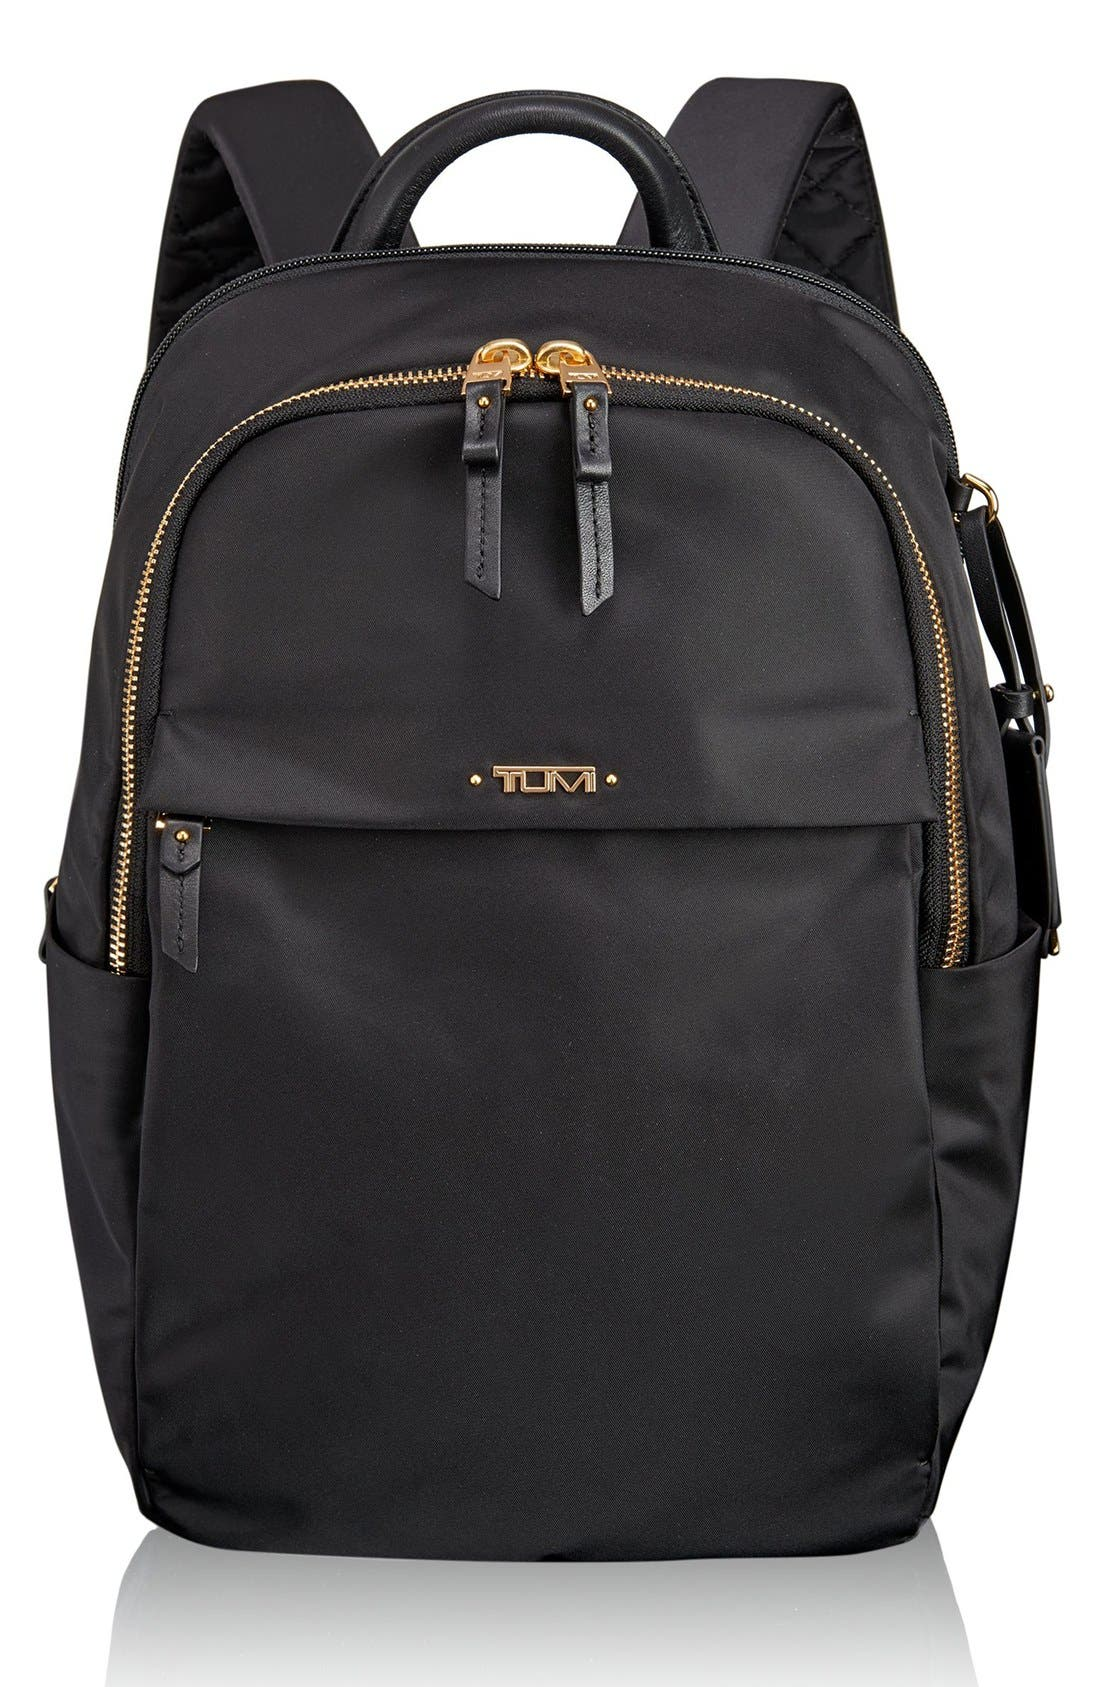 Alternate Image 1 Selected - Tumi 'Voyageur - Small Daniella' Backpack